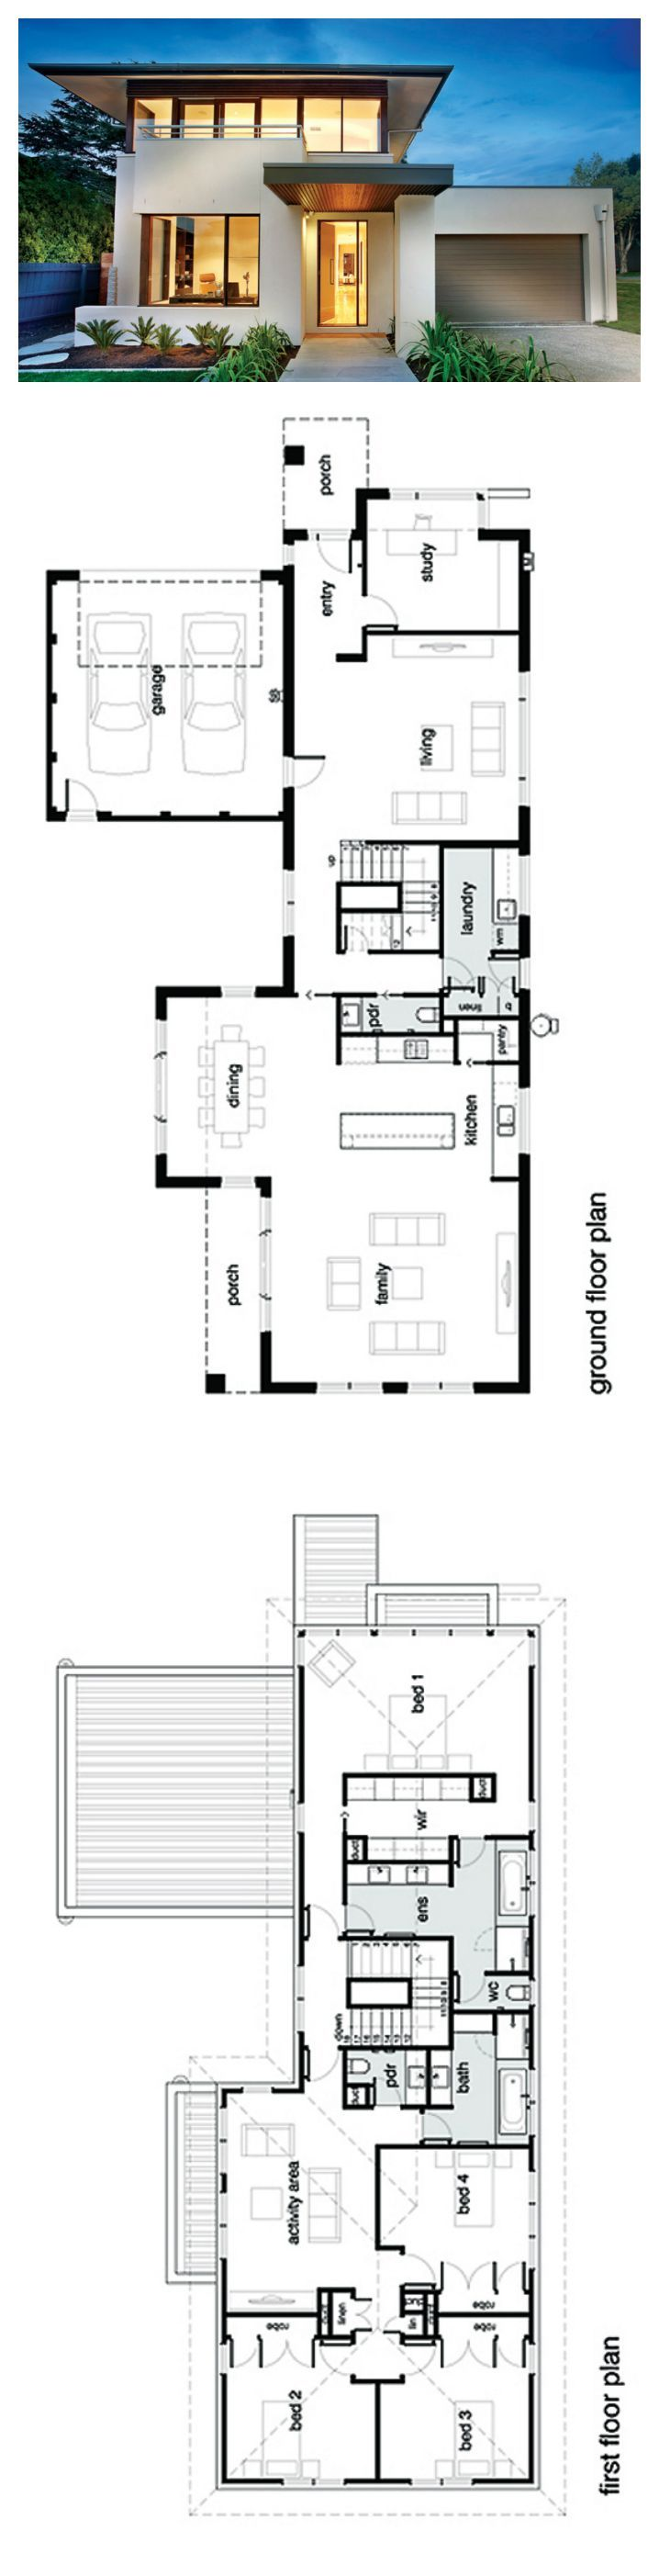 top 25 best architecture plan ideas on pinterest site plans plan 496 18 3584 sf 4 bed study 2 5 bath